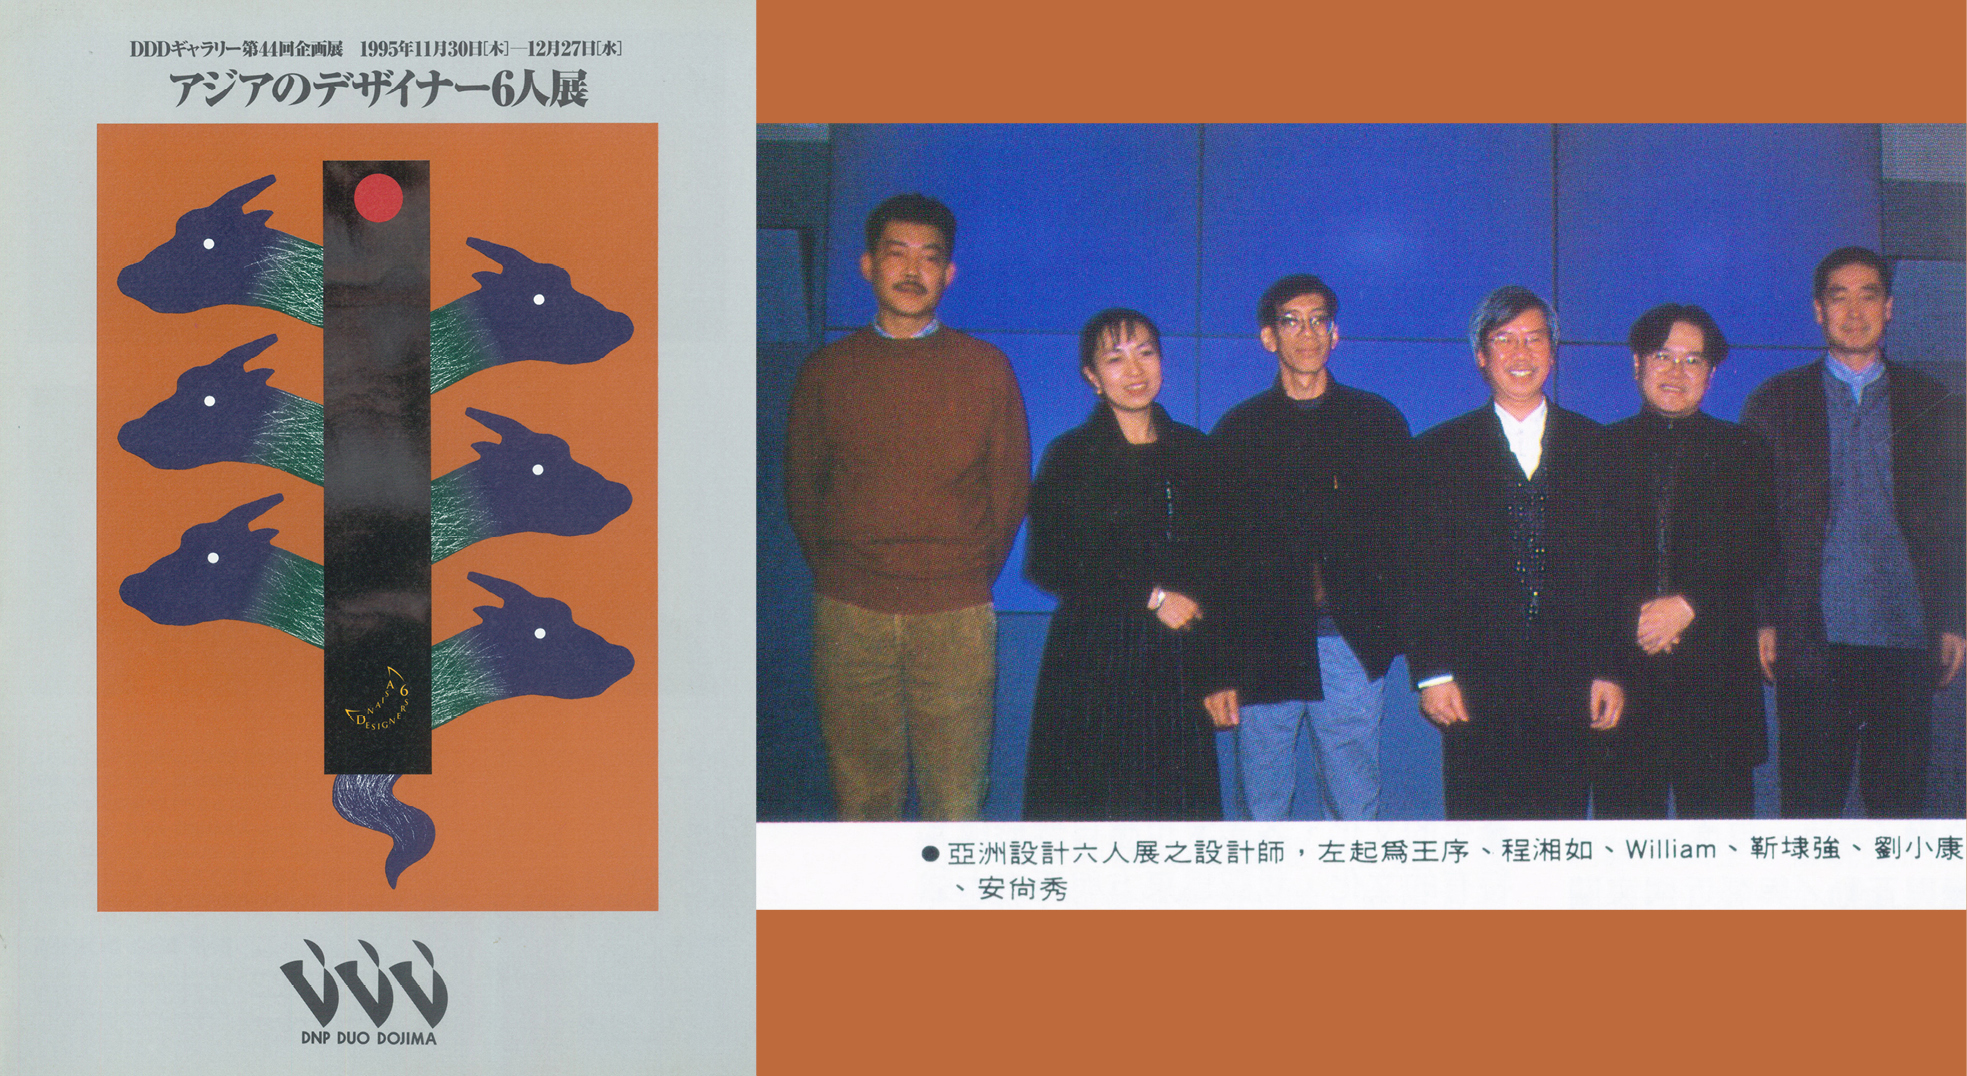 whwWeb_About_whw_Activities_JP_6 Asian Designers.jpg